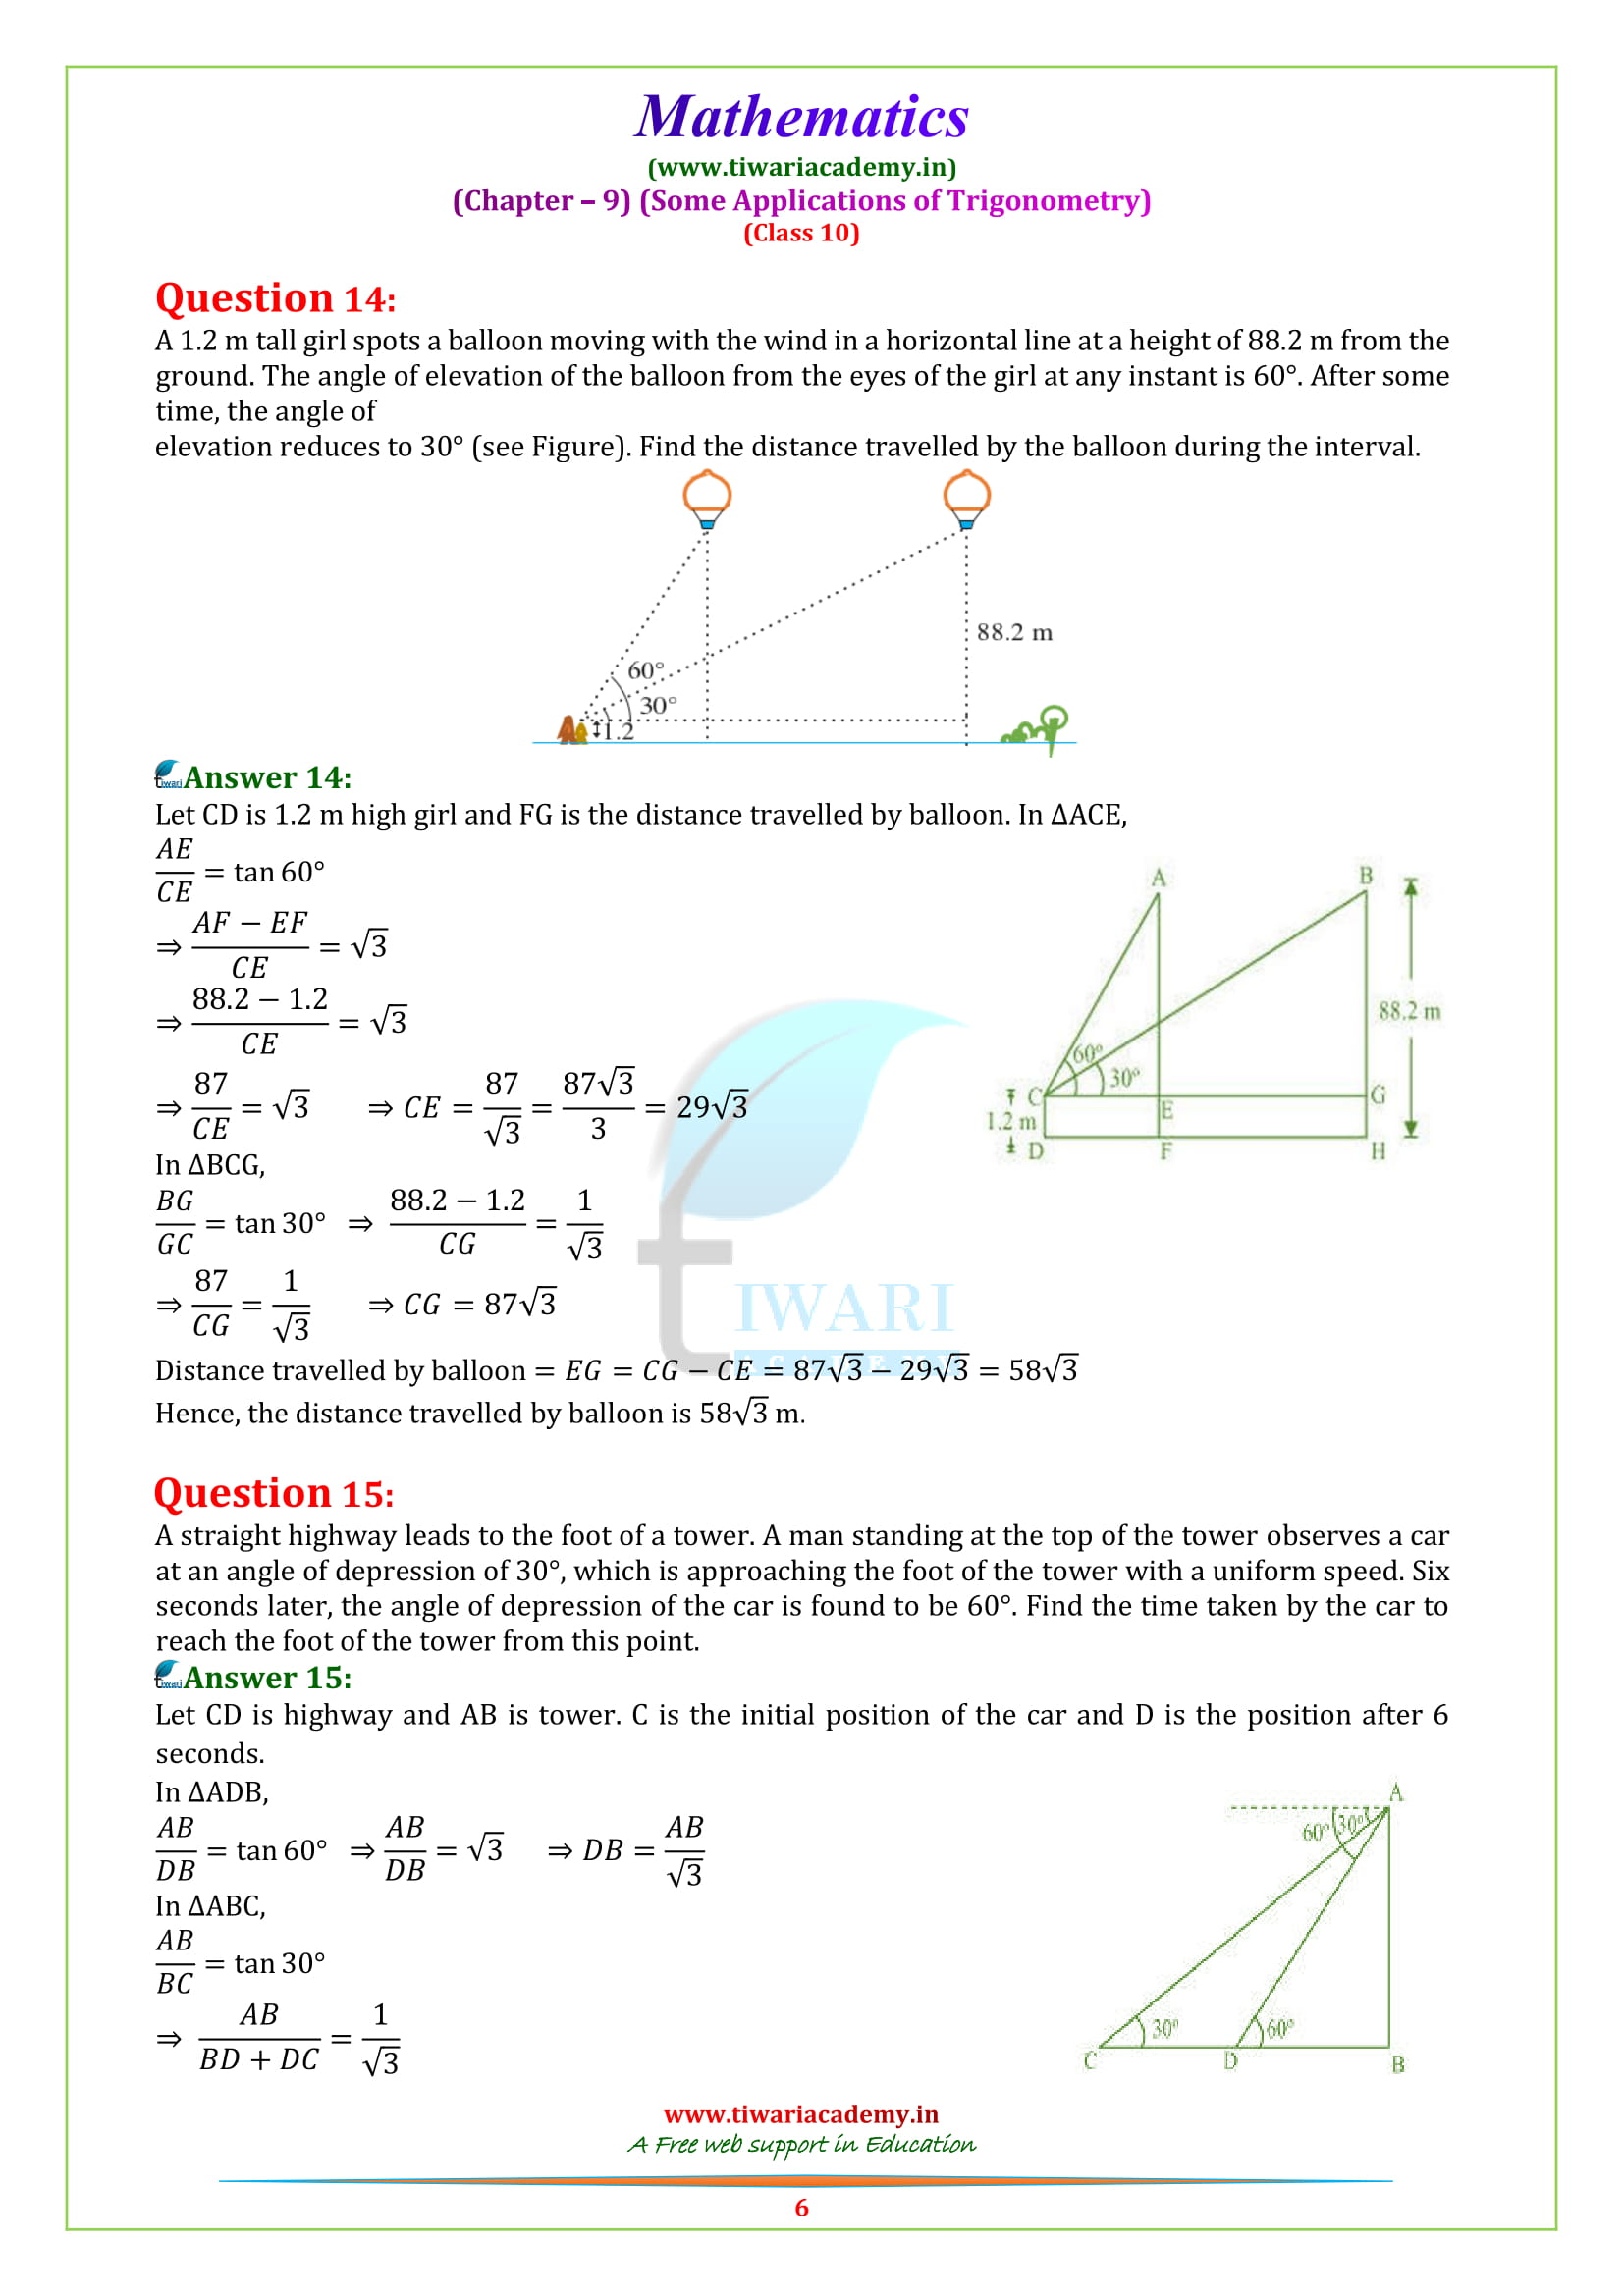 10 Maths ex. 9.1 question 14 and 15 solutions in english medium